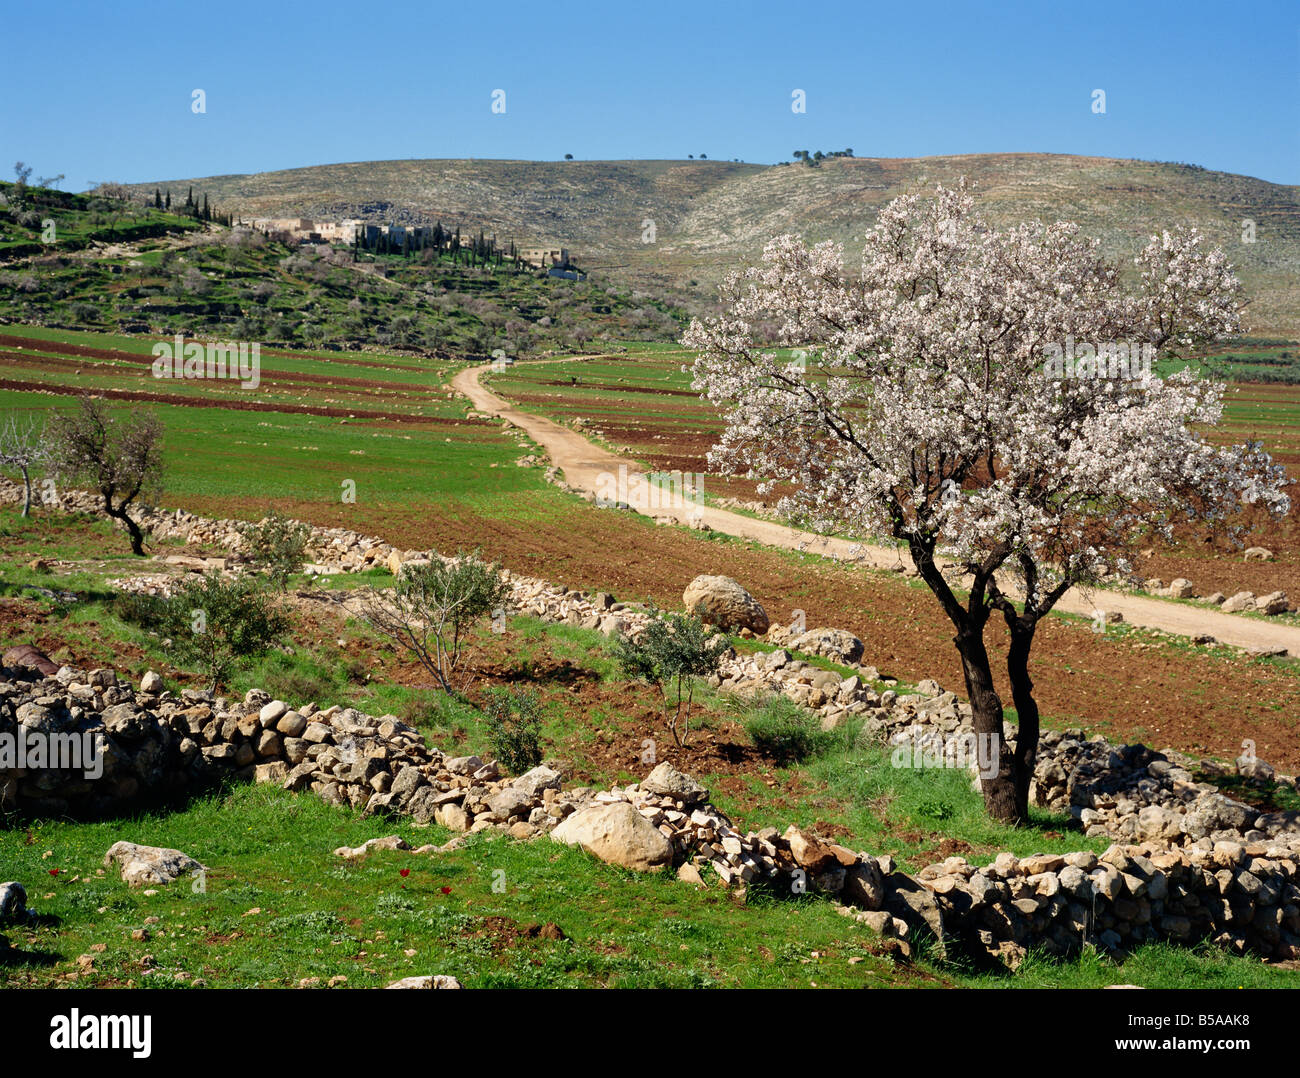 the almond tree free pdf